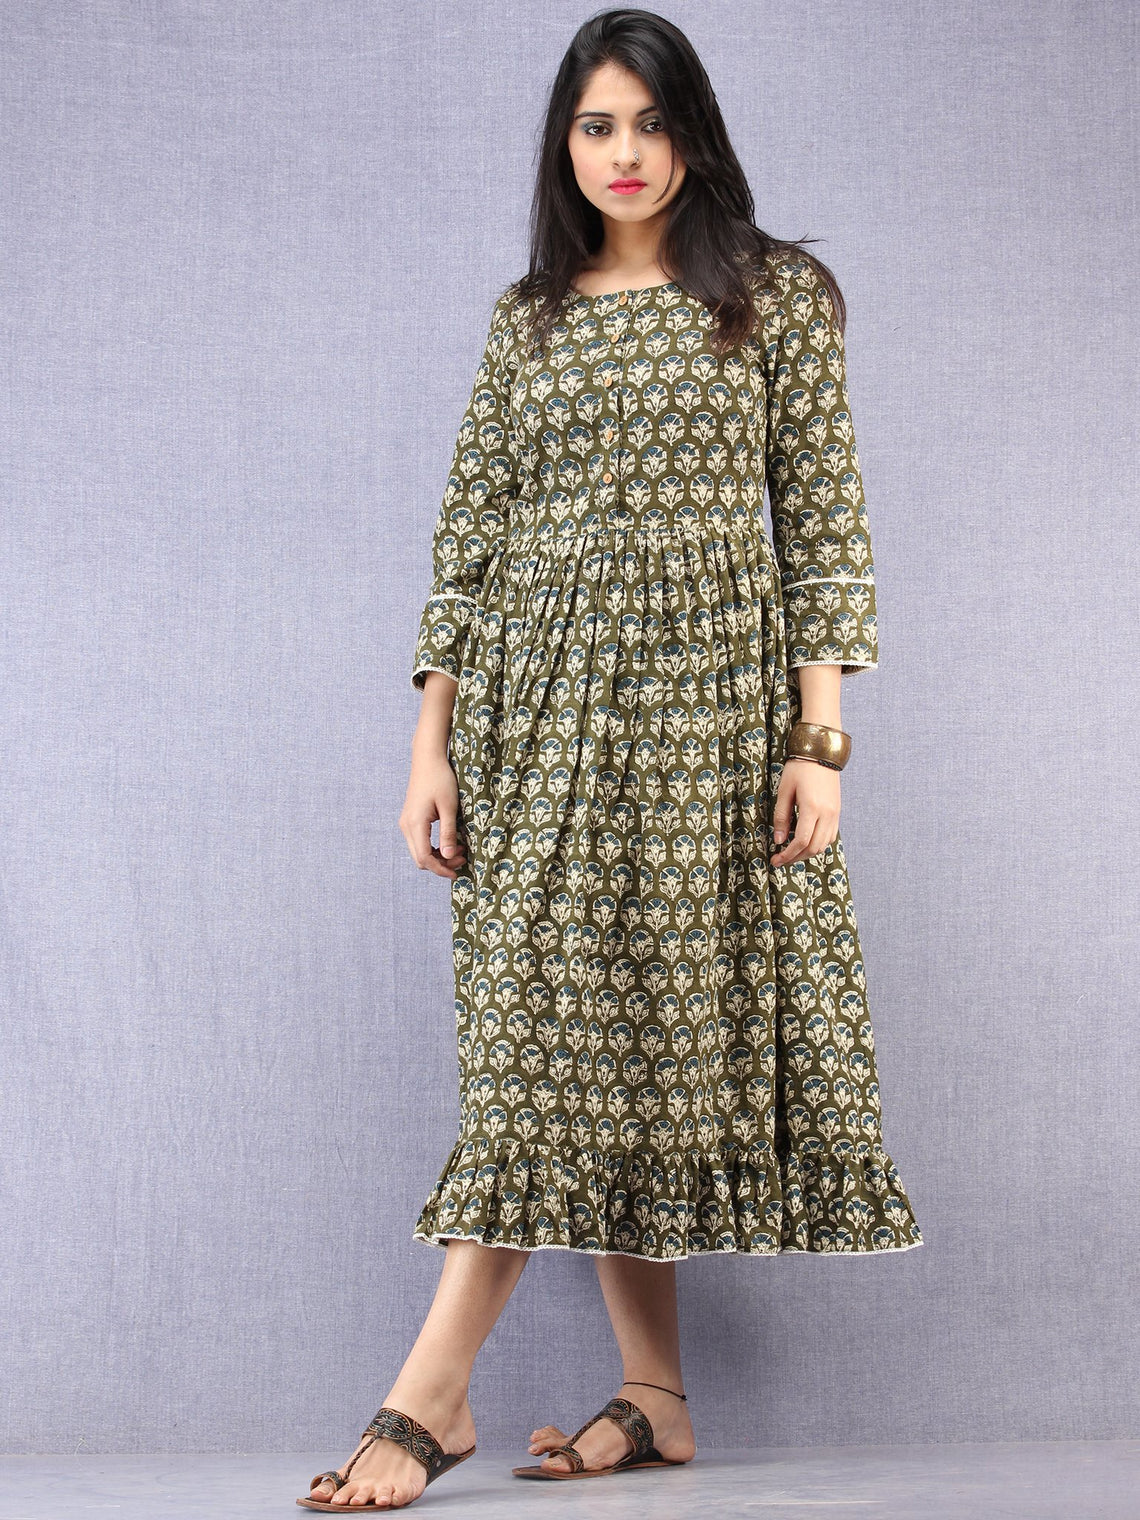 Hena - Hand Block Printed Short Cotton Dress  - D392F1738